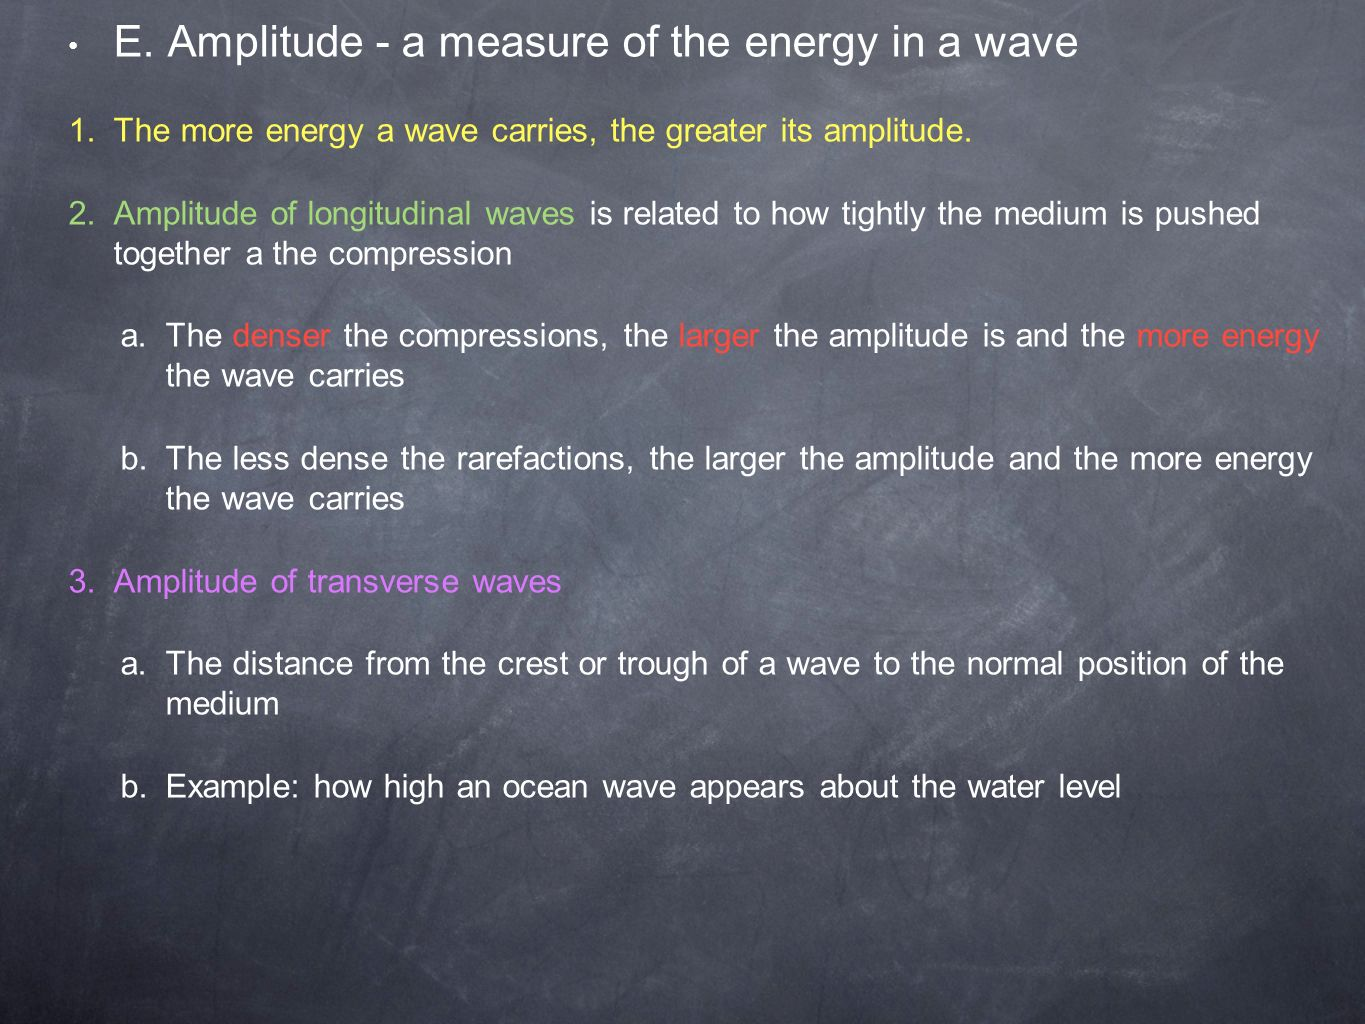 E. Amplitude - a measure of the energy in a wave 1.